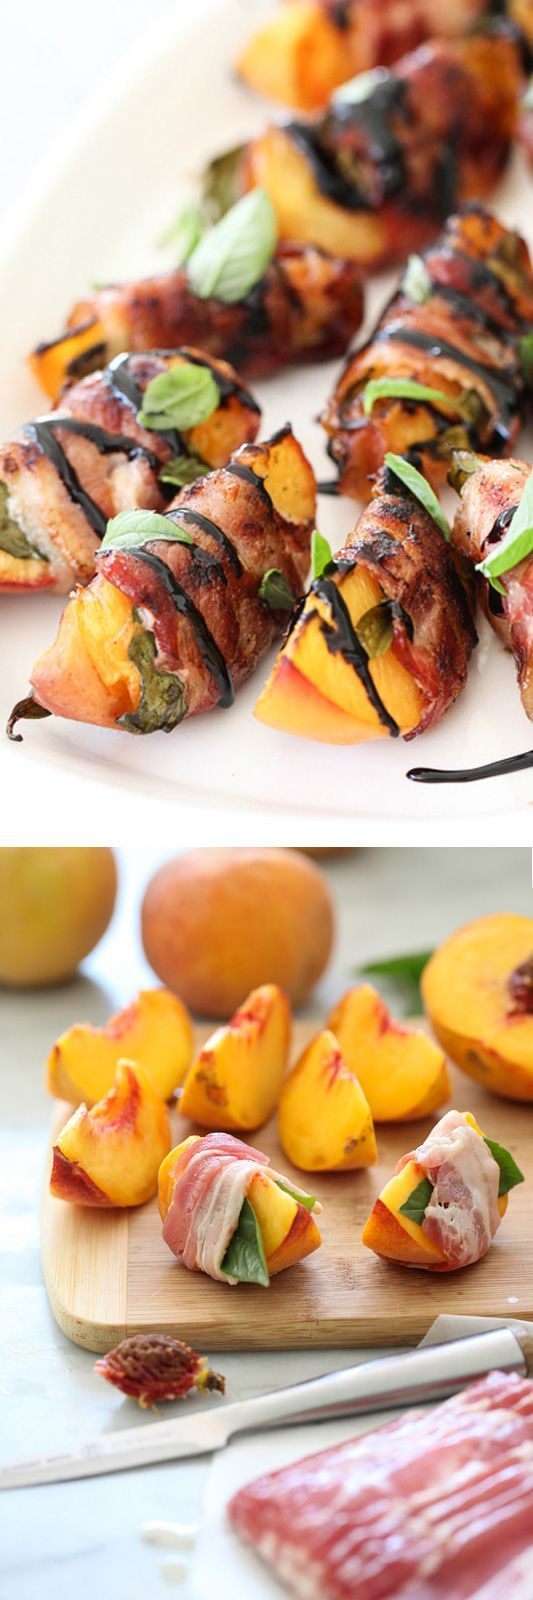 Bacon Wrapped Grilled Peaches with Balsamic Glaze #peaches #bacon #appetizer